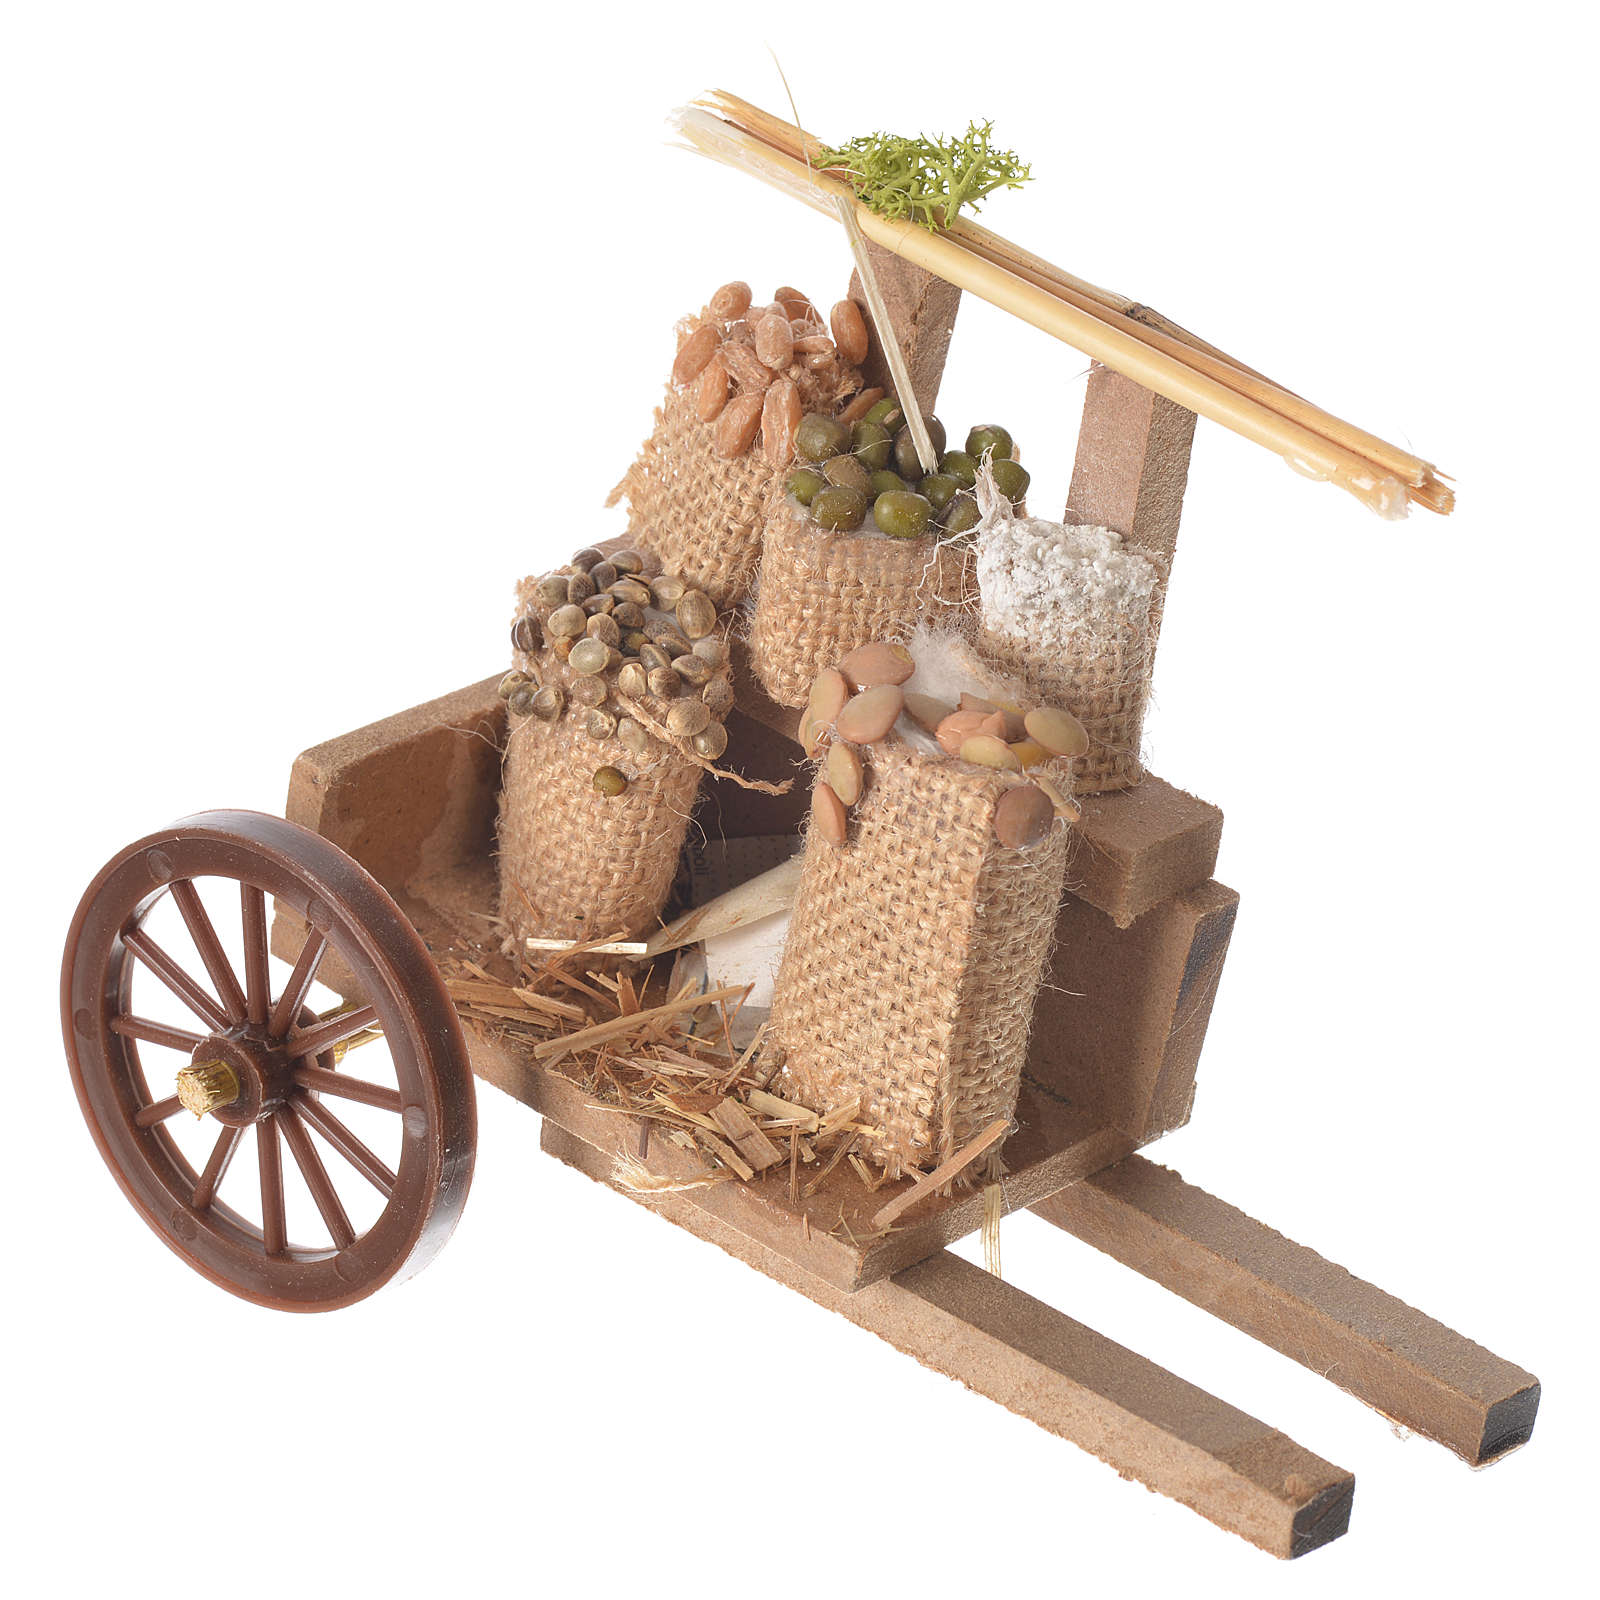 Cart with cereal in wax, nativity accessory 10x12x8cm 4